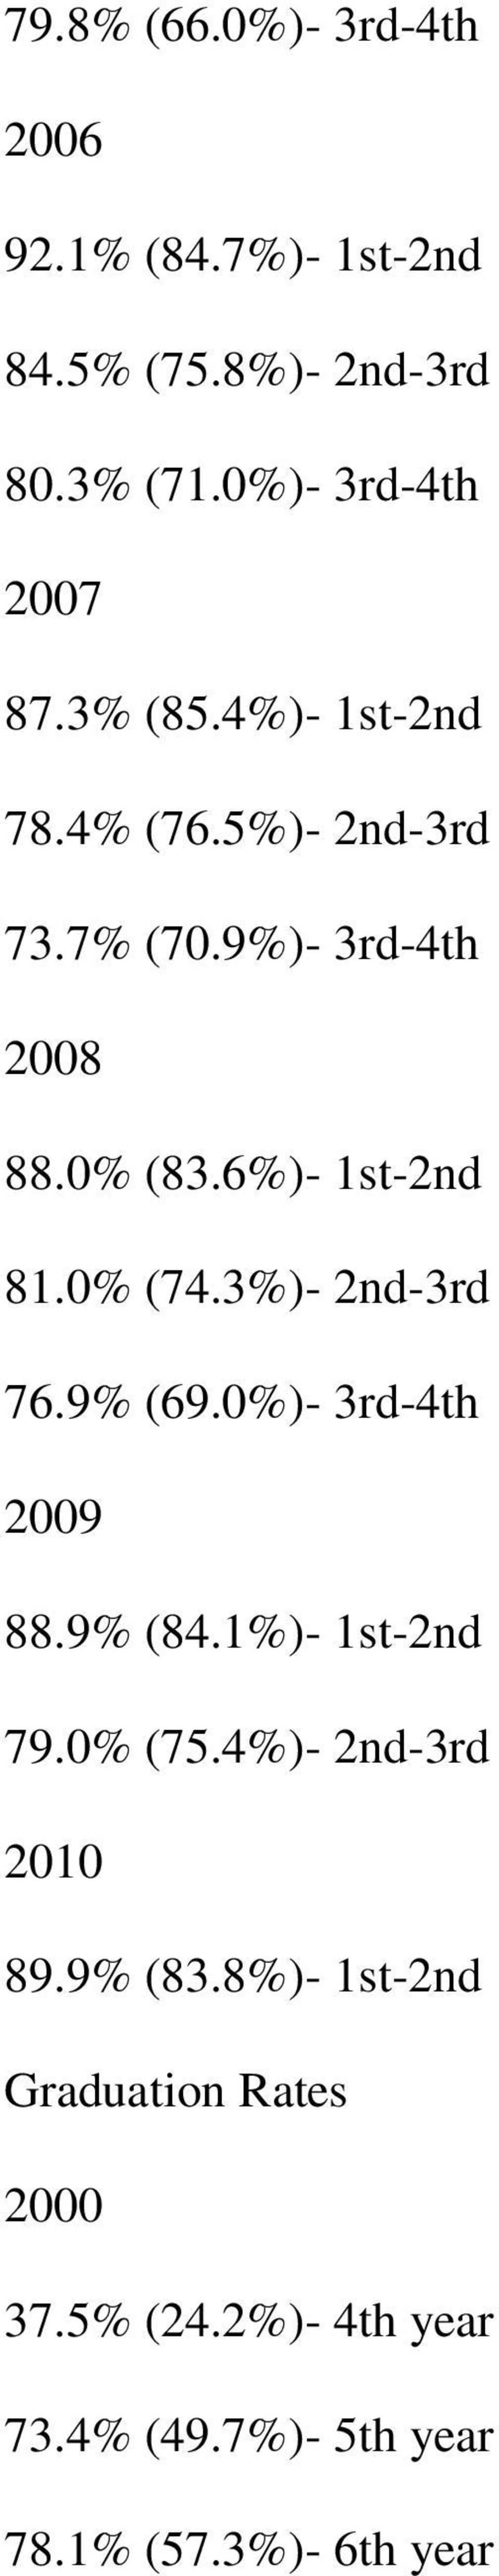 3%)- 2nd-3rd 76.9% (69.0%)- 3rd-4th 2009 88.9% (84.1%)- 1st-2nd 79.0% (75.4%)- 2nd-3rd 2010 89.9% (83.